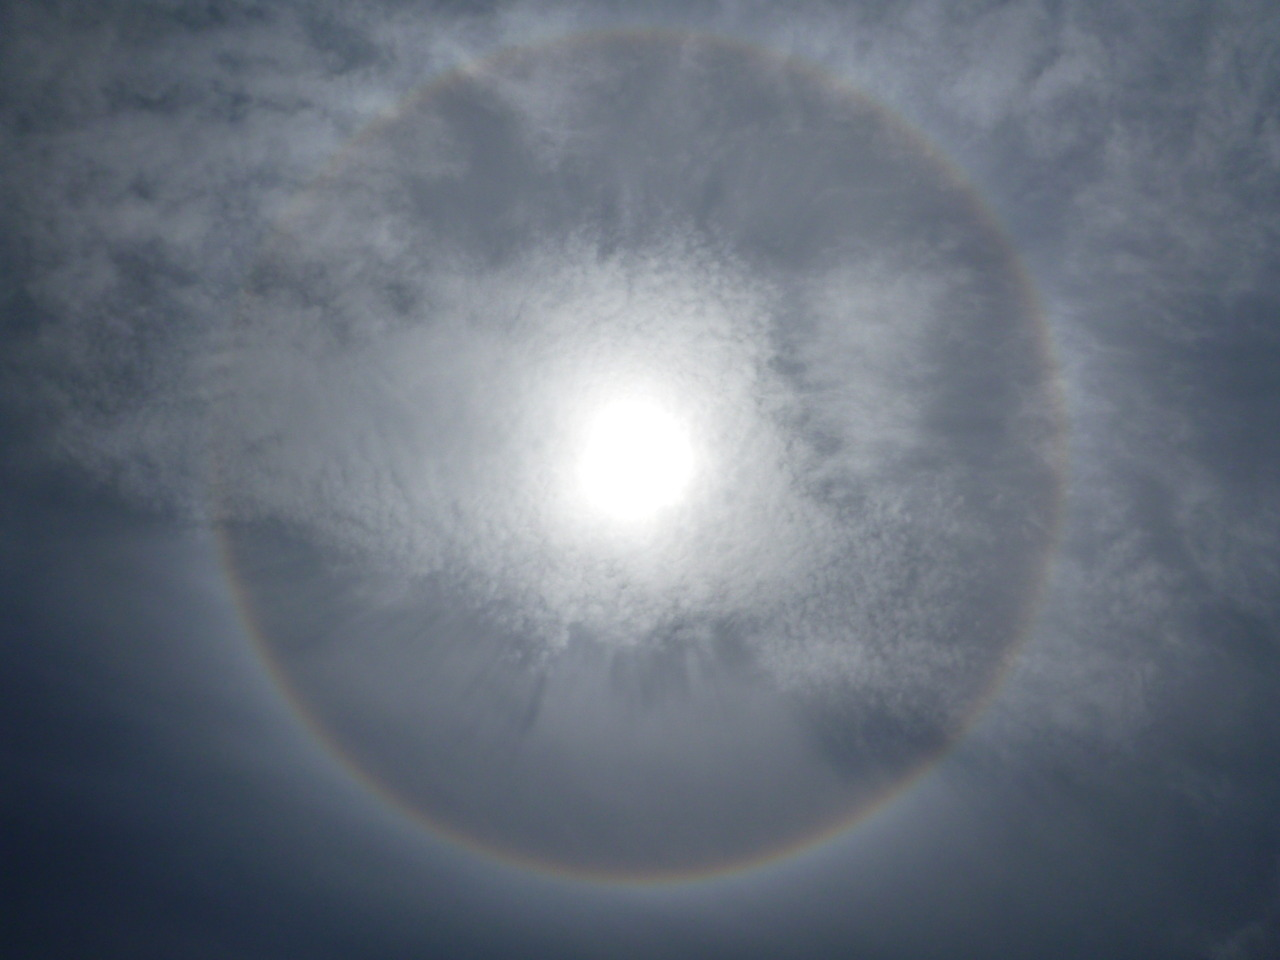 Crazy-Halo-Rainbow-Sun-Thingymijig. Anyone got a proper name for it?